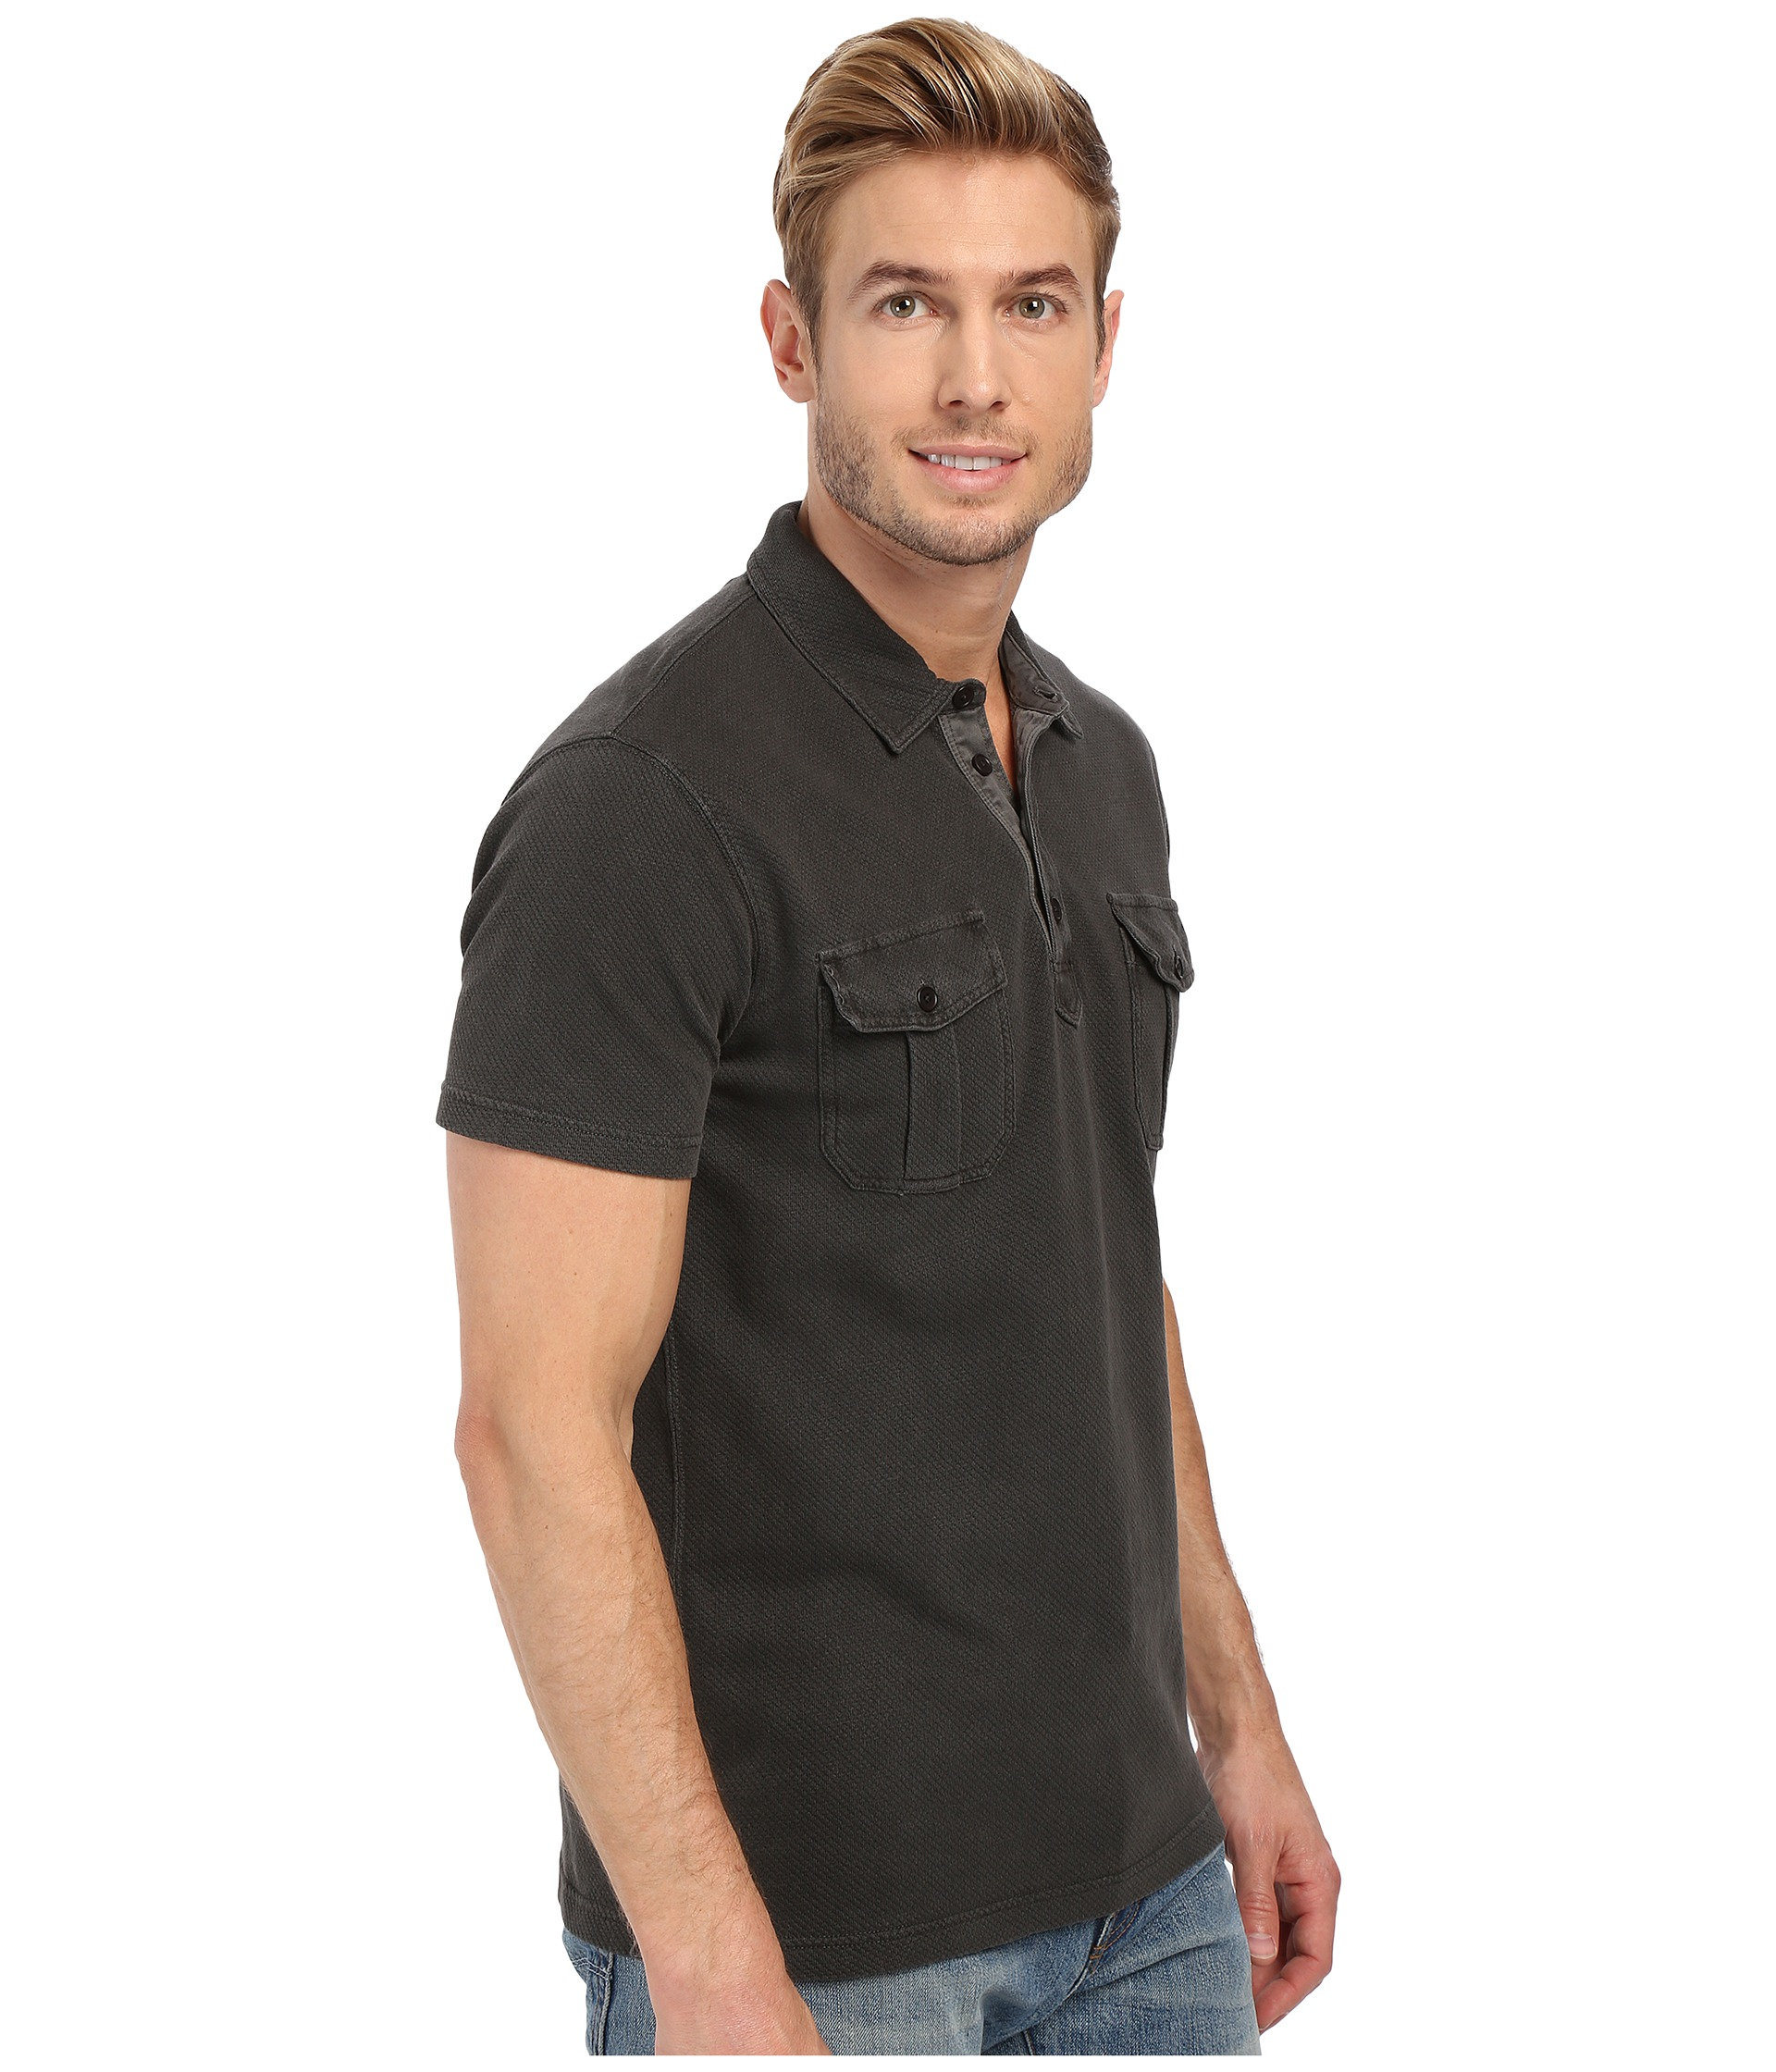 Lucky brand polo shirt in black for men lyst for Polo brand polo shirts